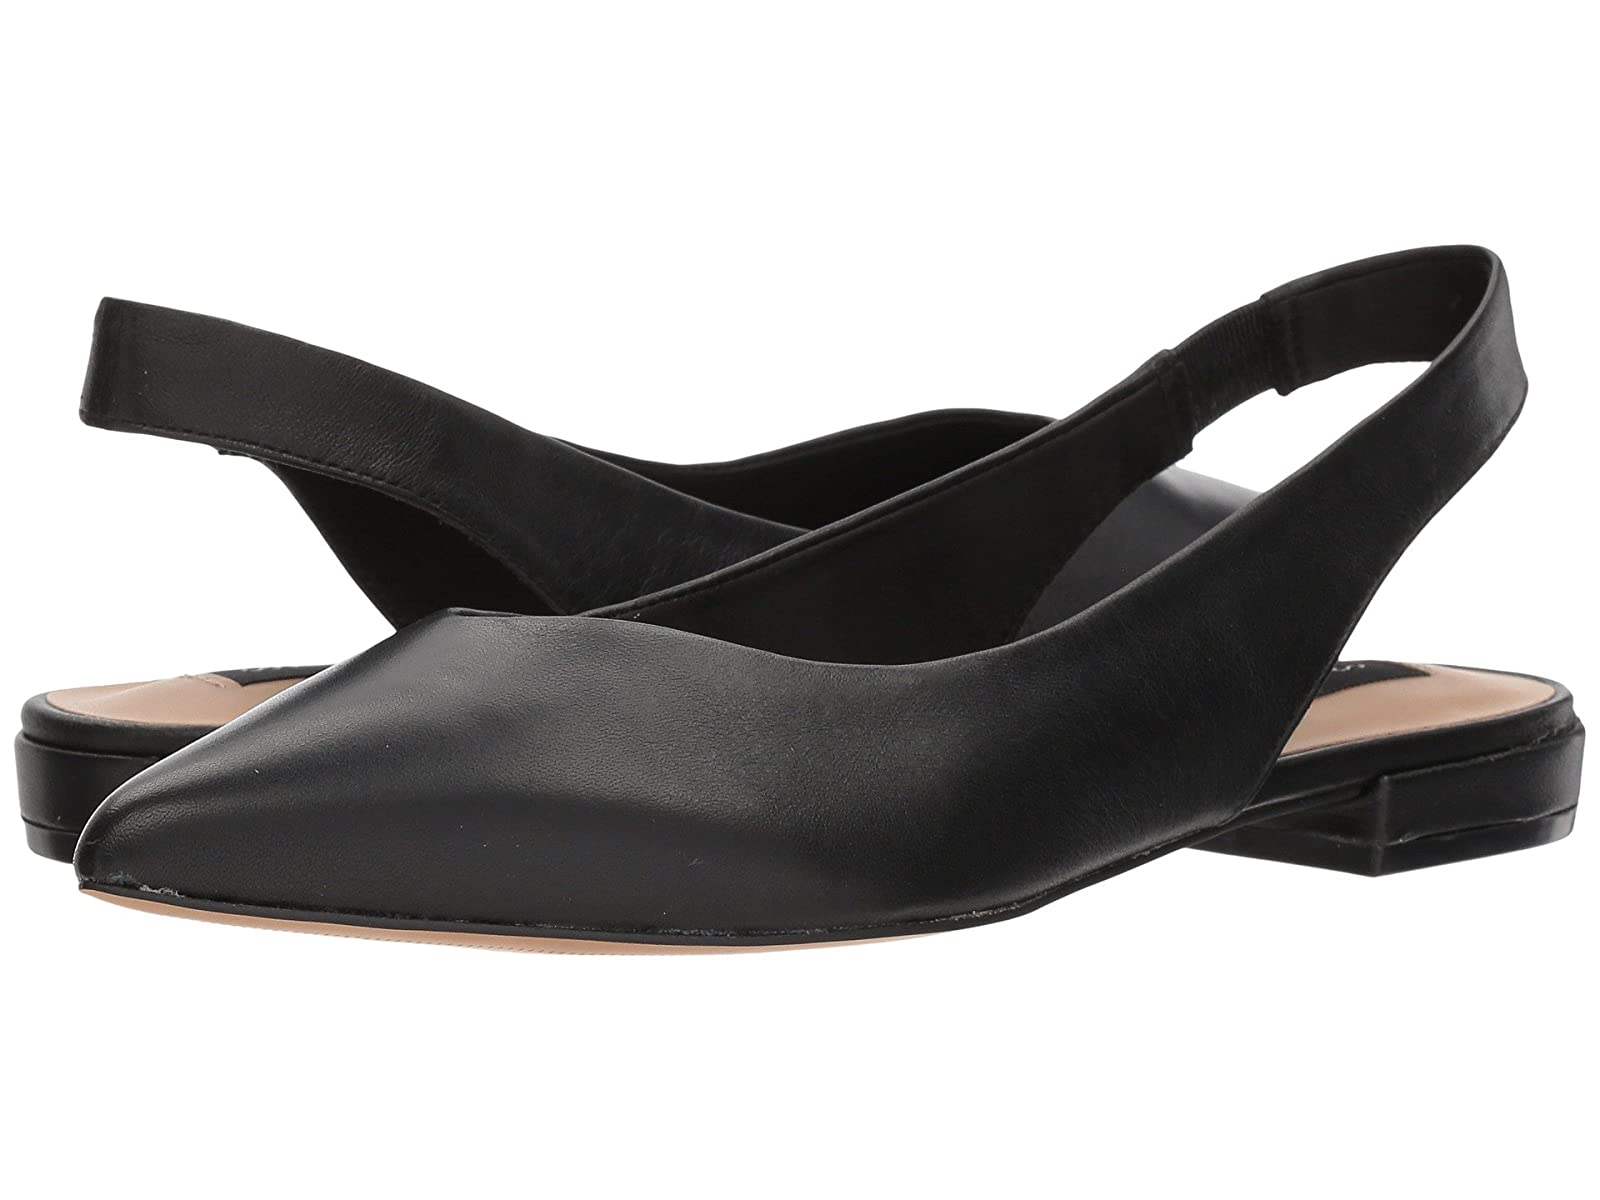 Steven Lourdes Slingback FlatCheap and distinctive eye-catching shoes